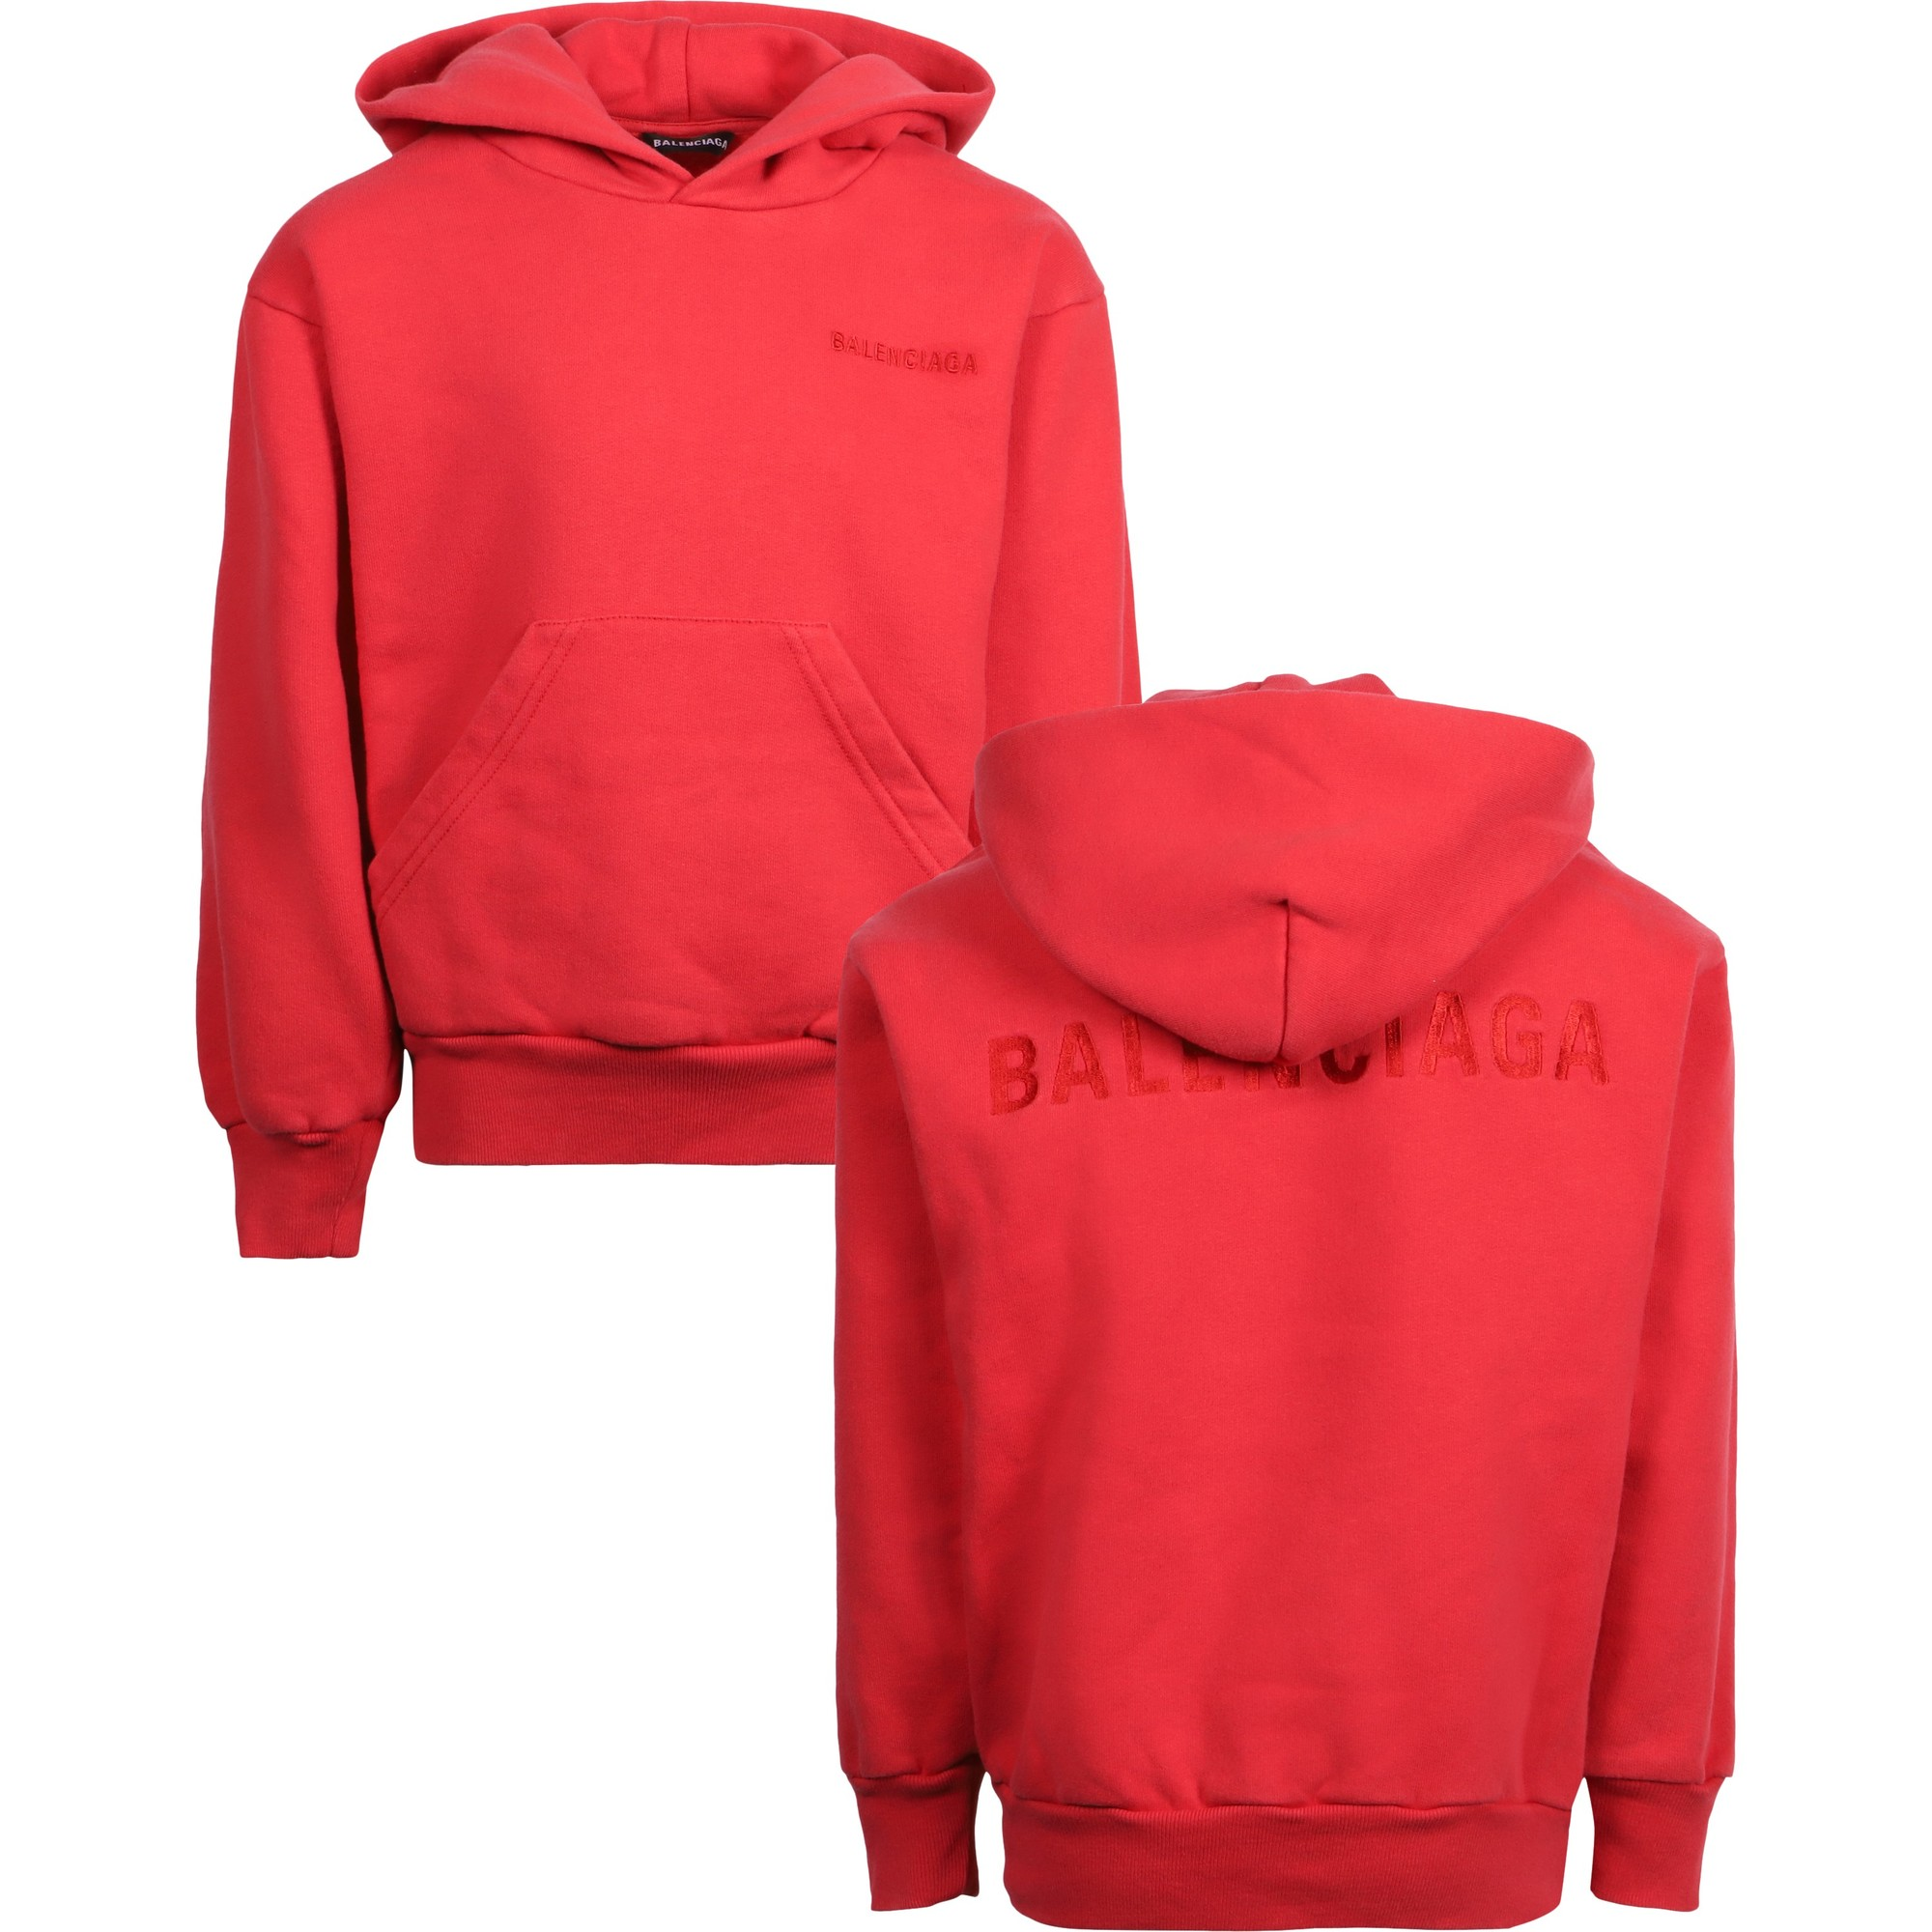 Balenciaga Red Hoodie with Pouch Pocket